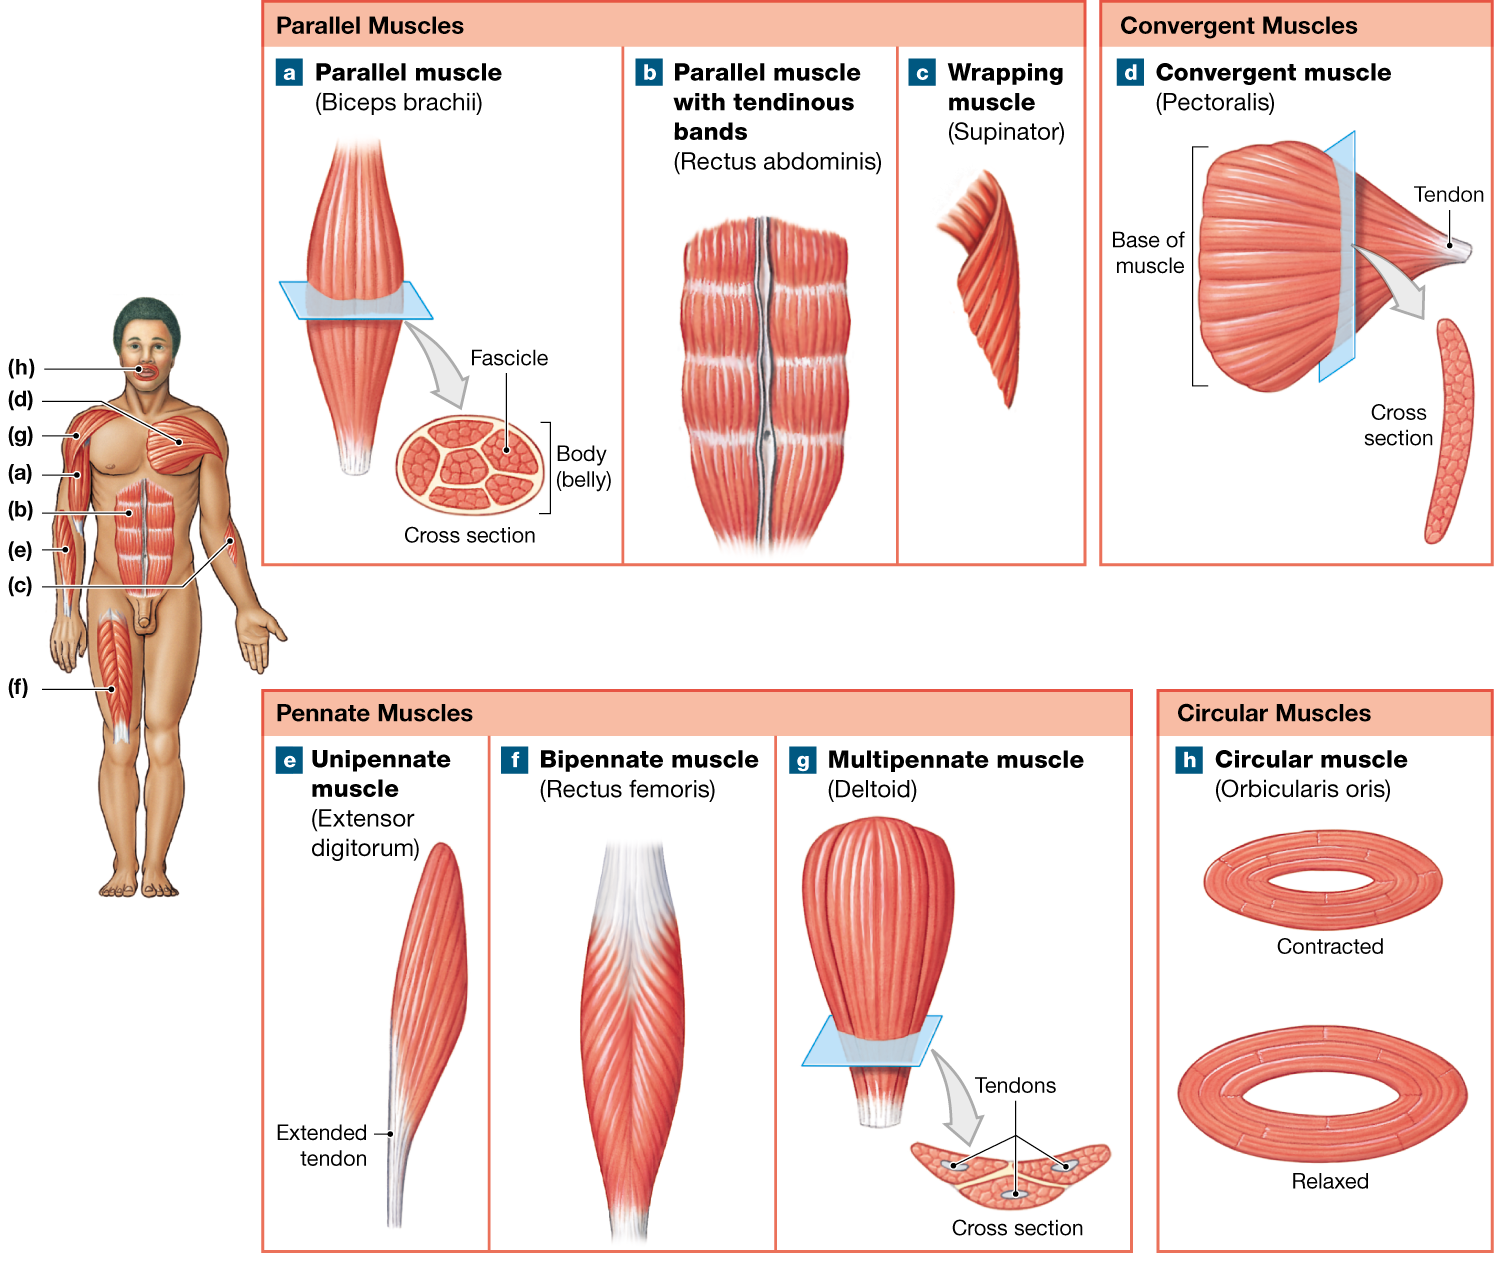 11 1 Fascicle Arrangement Is Correlated With Muscle Power